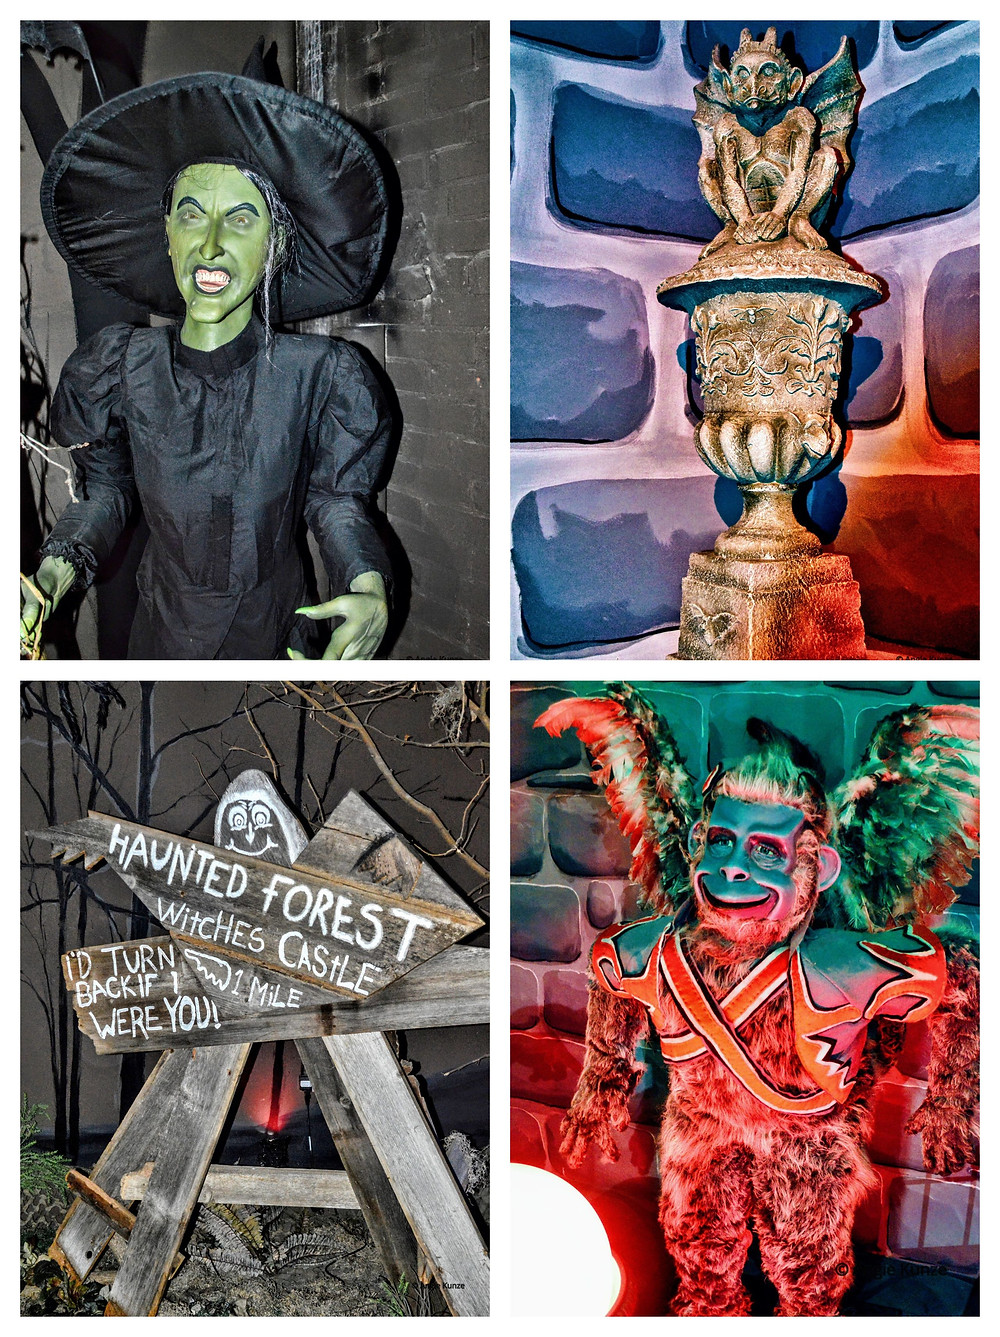 Wizard of Oz Characters at the Oz Museum in Wamego Kansas, the Wicked Witch and a flying monkey in the haunted forest